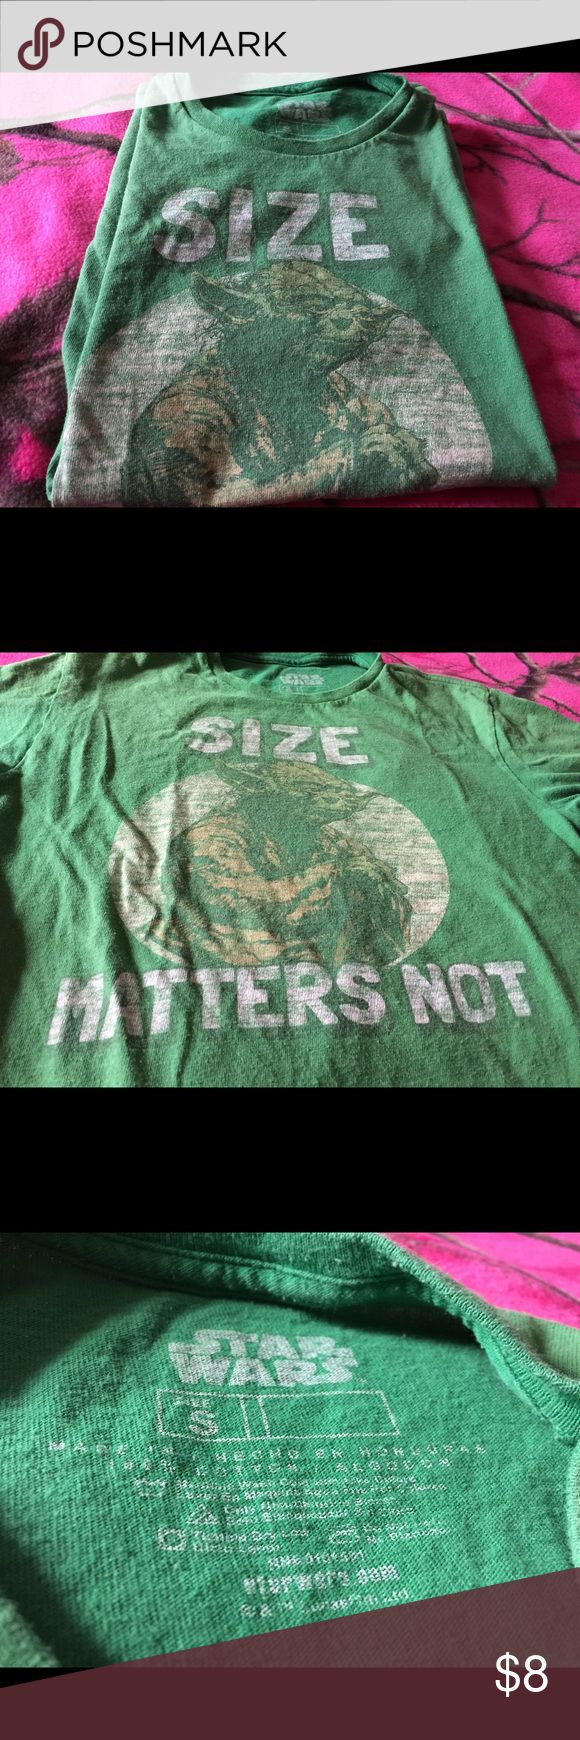 """Pre-owned small Star Wars Yoda t-shirt First and foremost; please view pics for best description as there is wear on this shirt. Pic of Yoda is a little faded I feel. My son absolutely loves this shirt. Solid green shirt w/small hole on the back (shown in pic).  On the front is Yoda along with the saying ;""""SIZE MATTERS NOT"""".  Very cute and perfect for any Star Wars/Yoda fan.      Measurements:  pit 2 pit: approx. 17"""" across and length (pit 2 bottom of shirt): approx. 15 1/2"""". Star Wars…"""